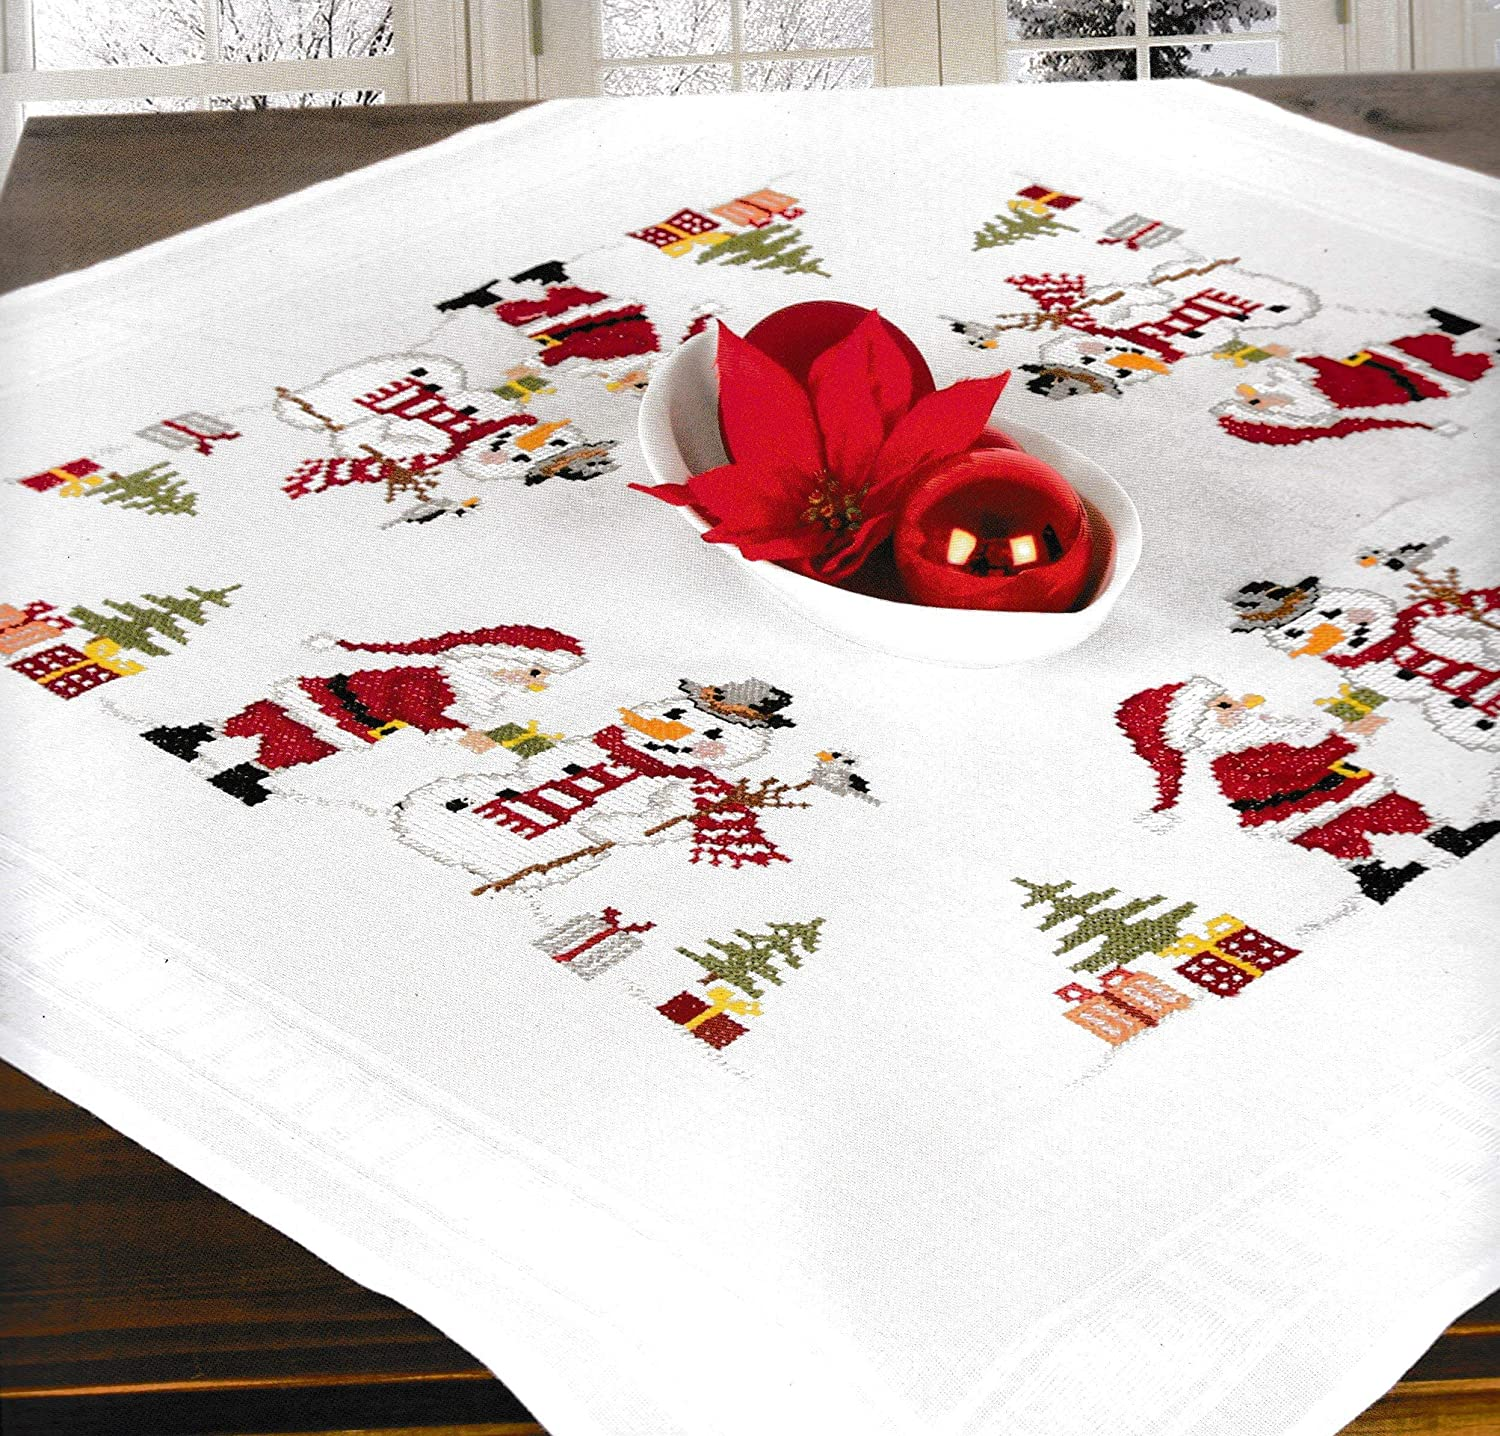 Printed Stamped Cross Stitch Tablecloth Kit for Embroidery (Christmas Elf 6933) Schafer